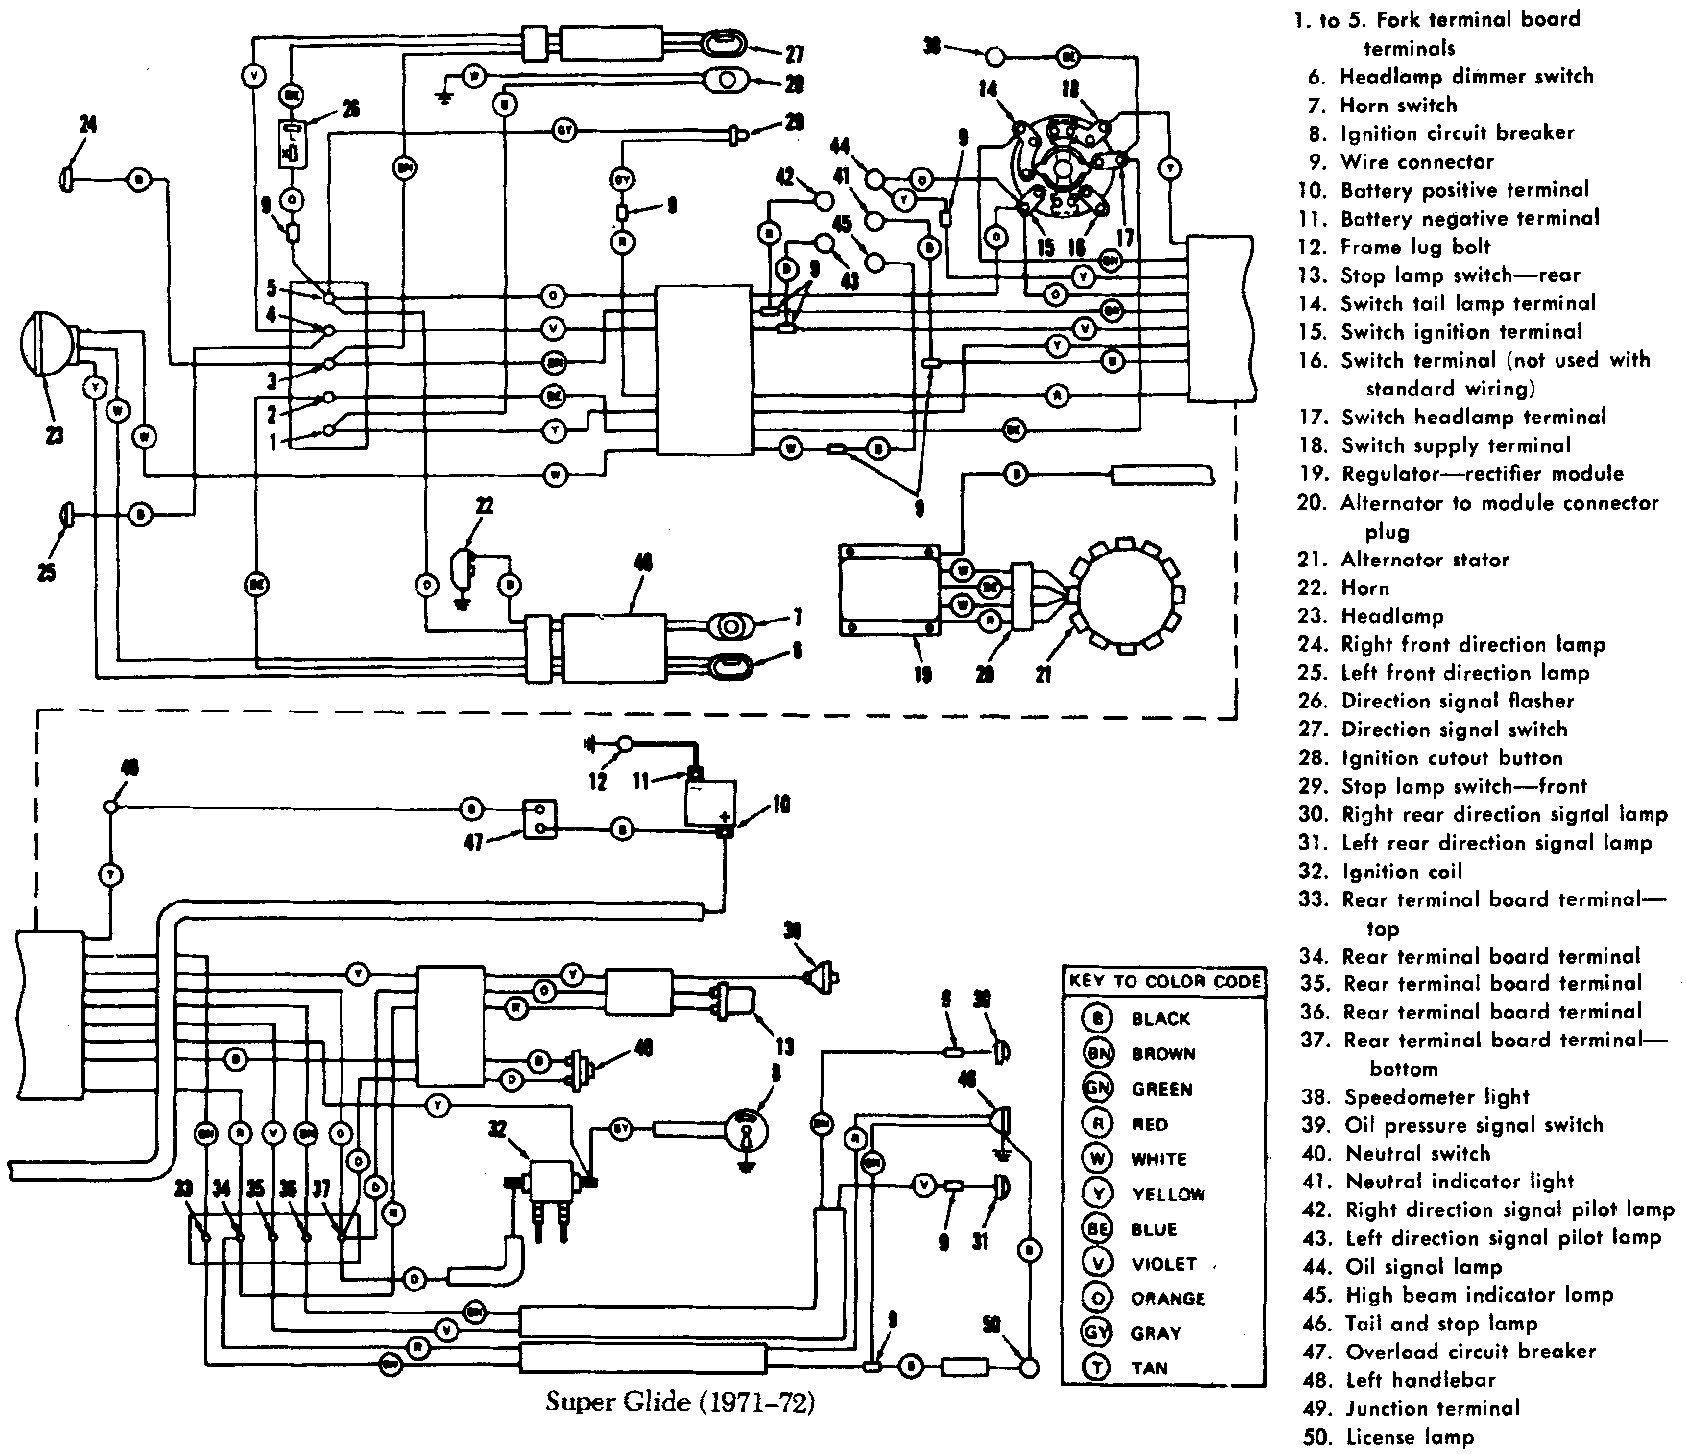 27 Harley Davidson Ignition Switch Wiring Diagram